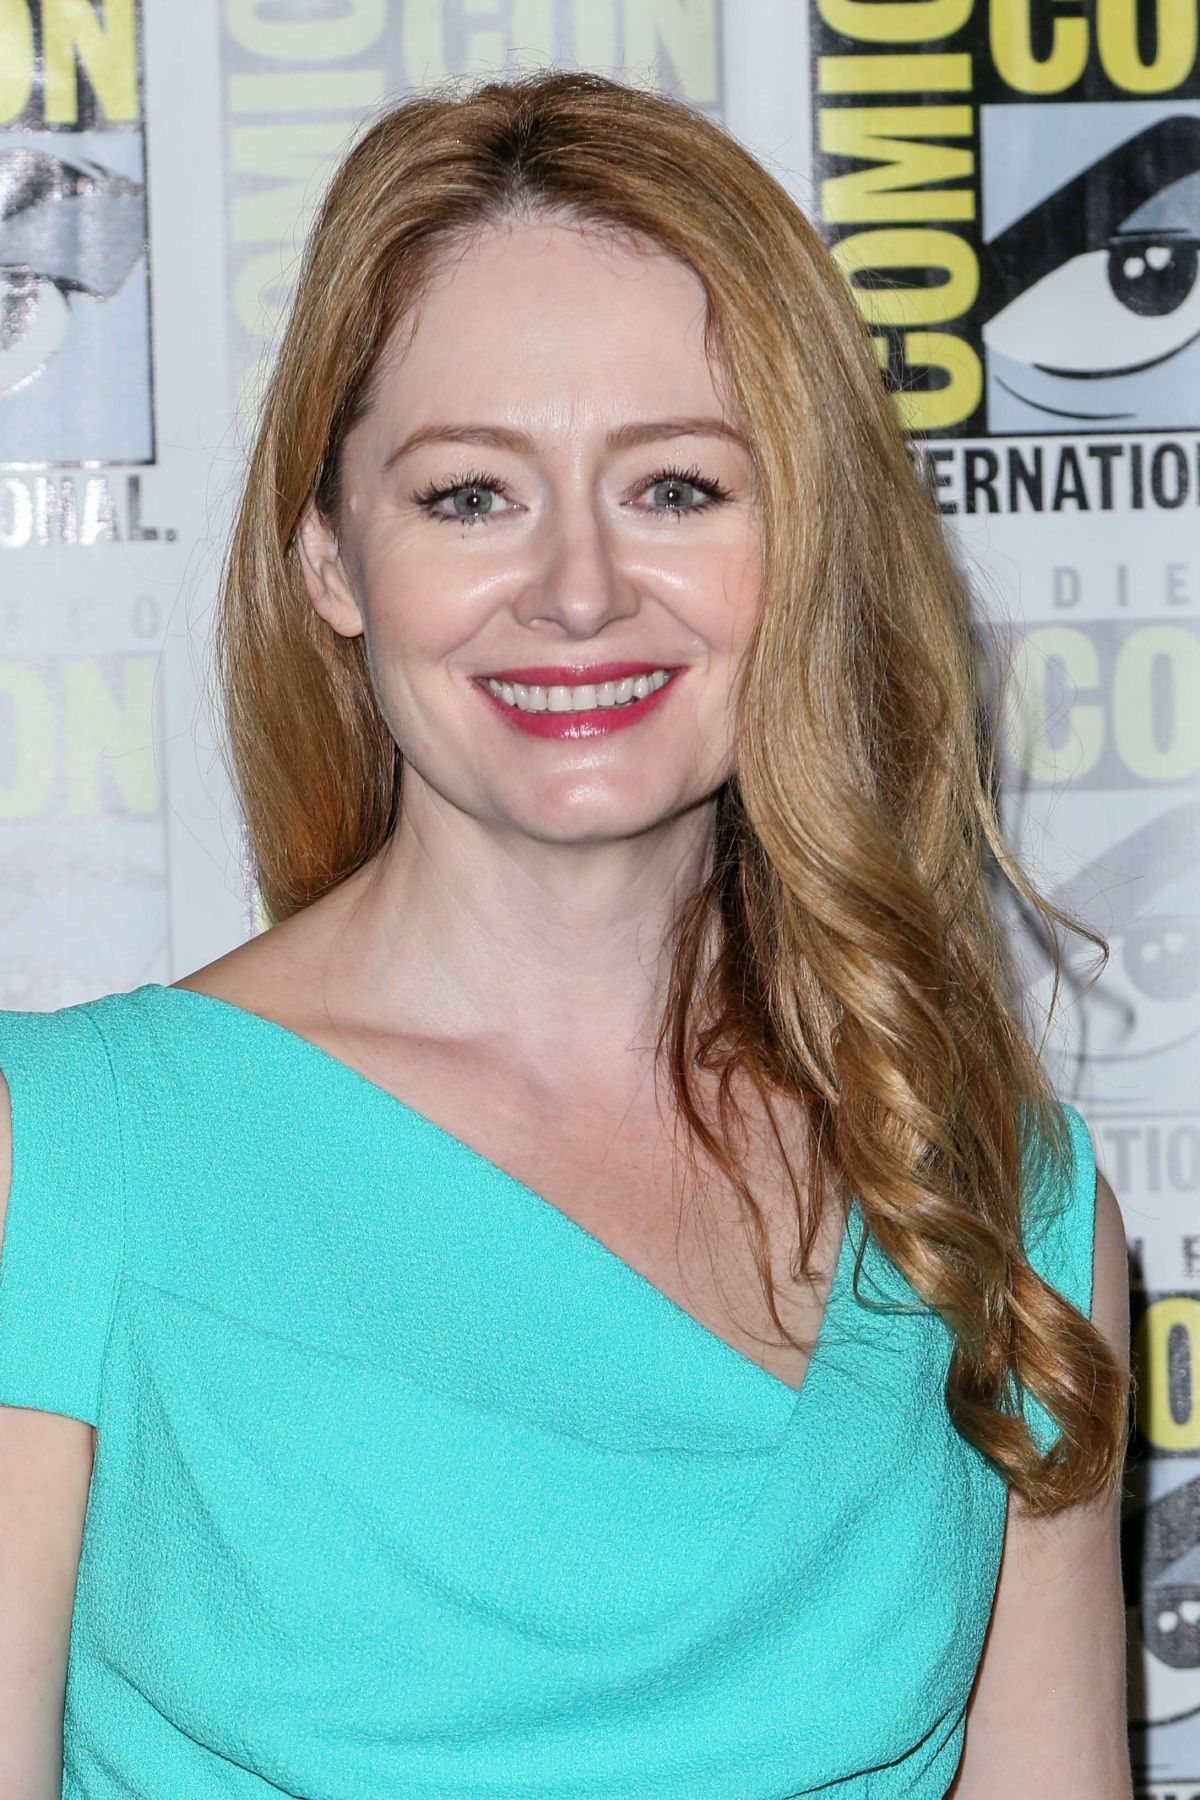 MIRANDA OTTO at 24 Legacy Panel at Comic-con 2016 in San Diego 07/23/2016